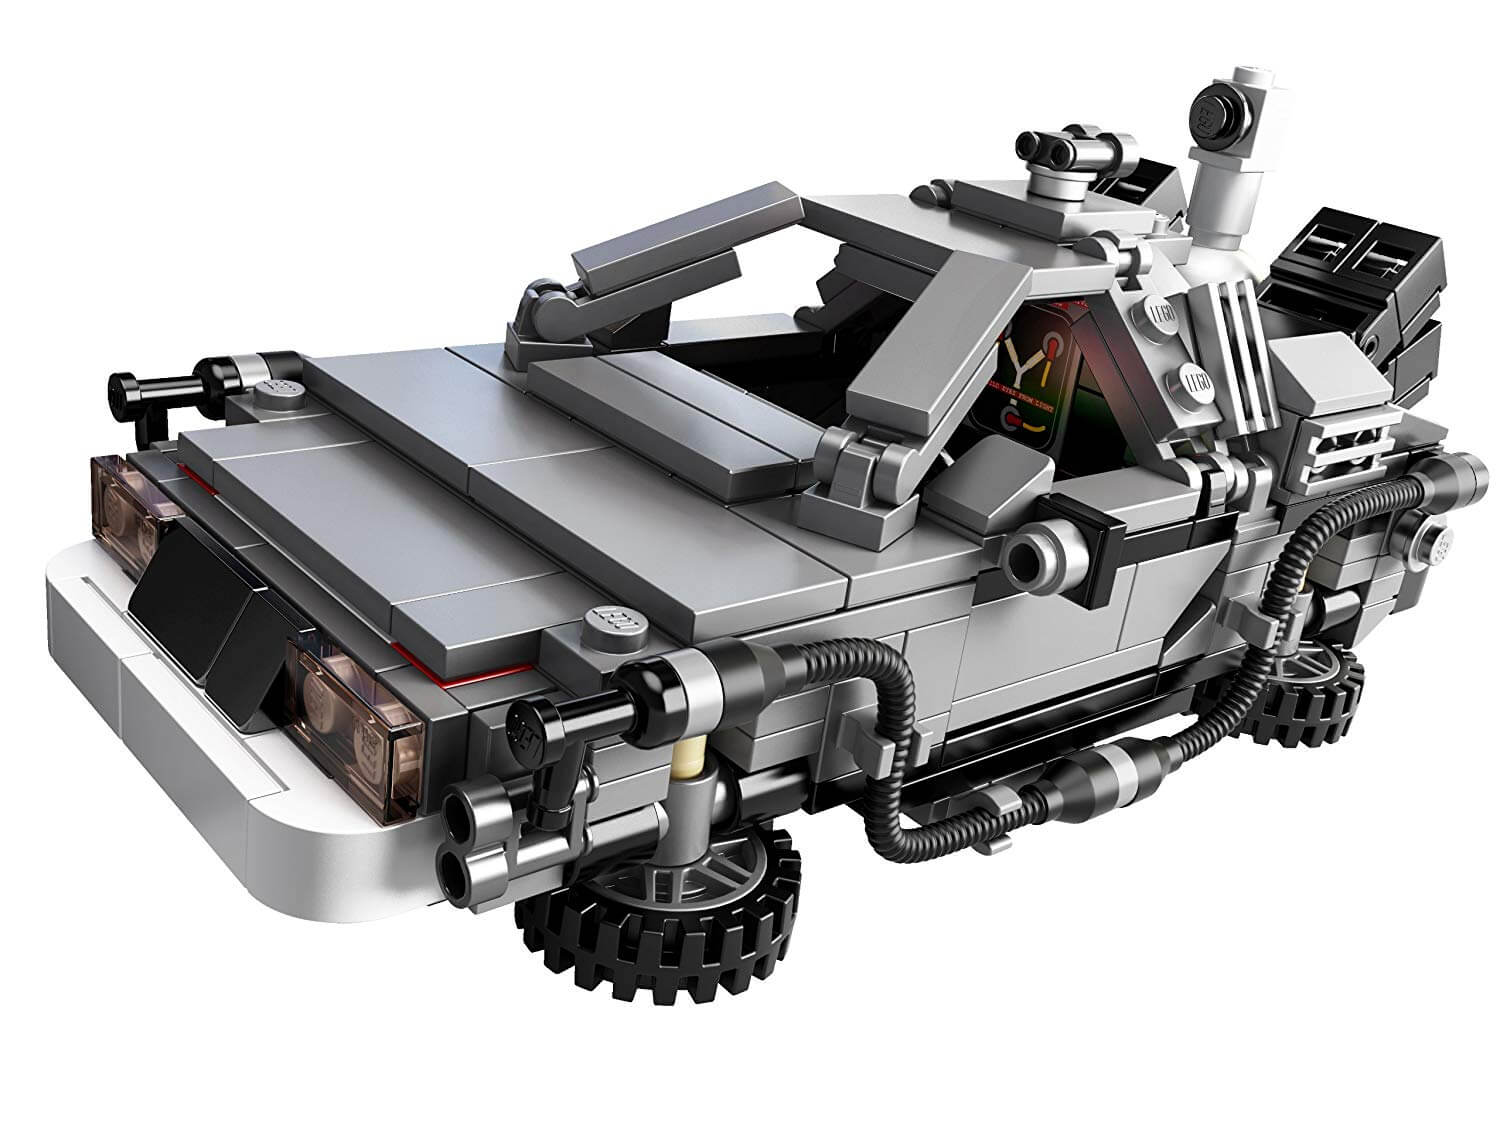 LEGO DeLorean Time Machine from 'Back to the Future'